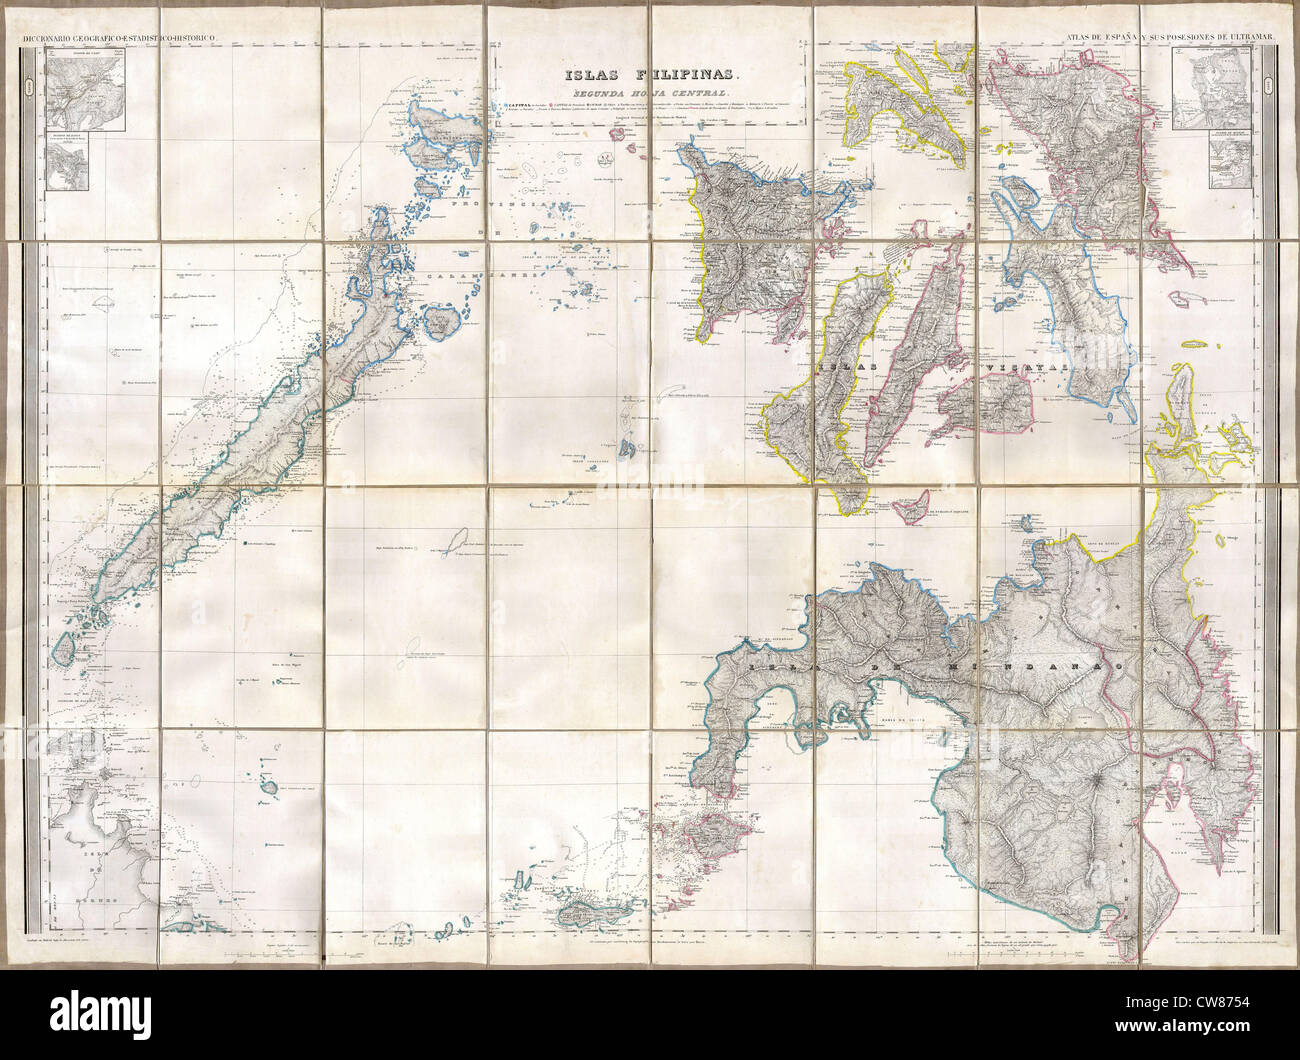 1852 Coello - Morata Map of the Southern Philippines - Stock Image